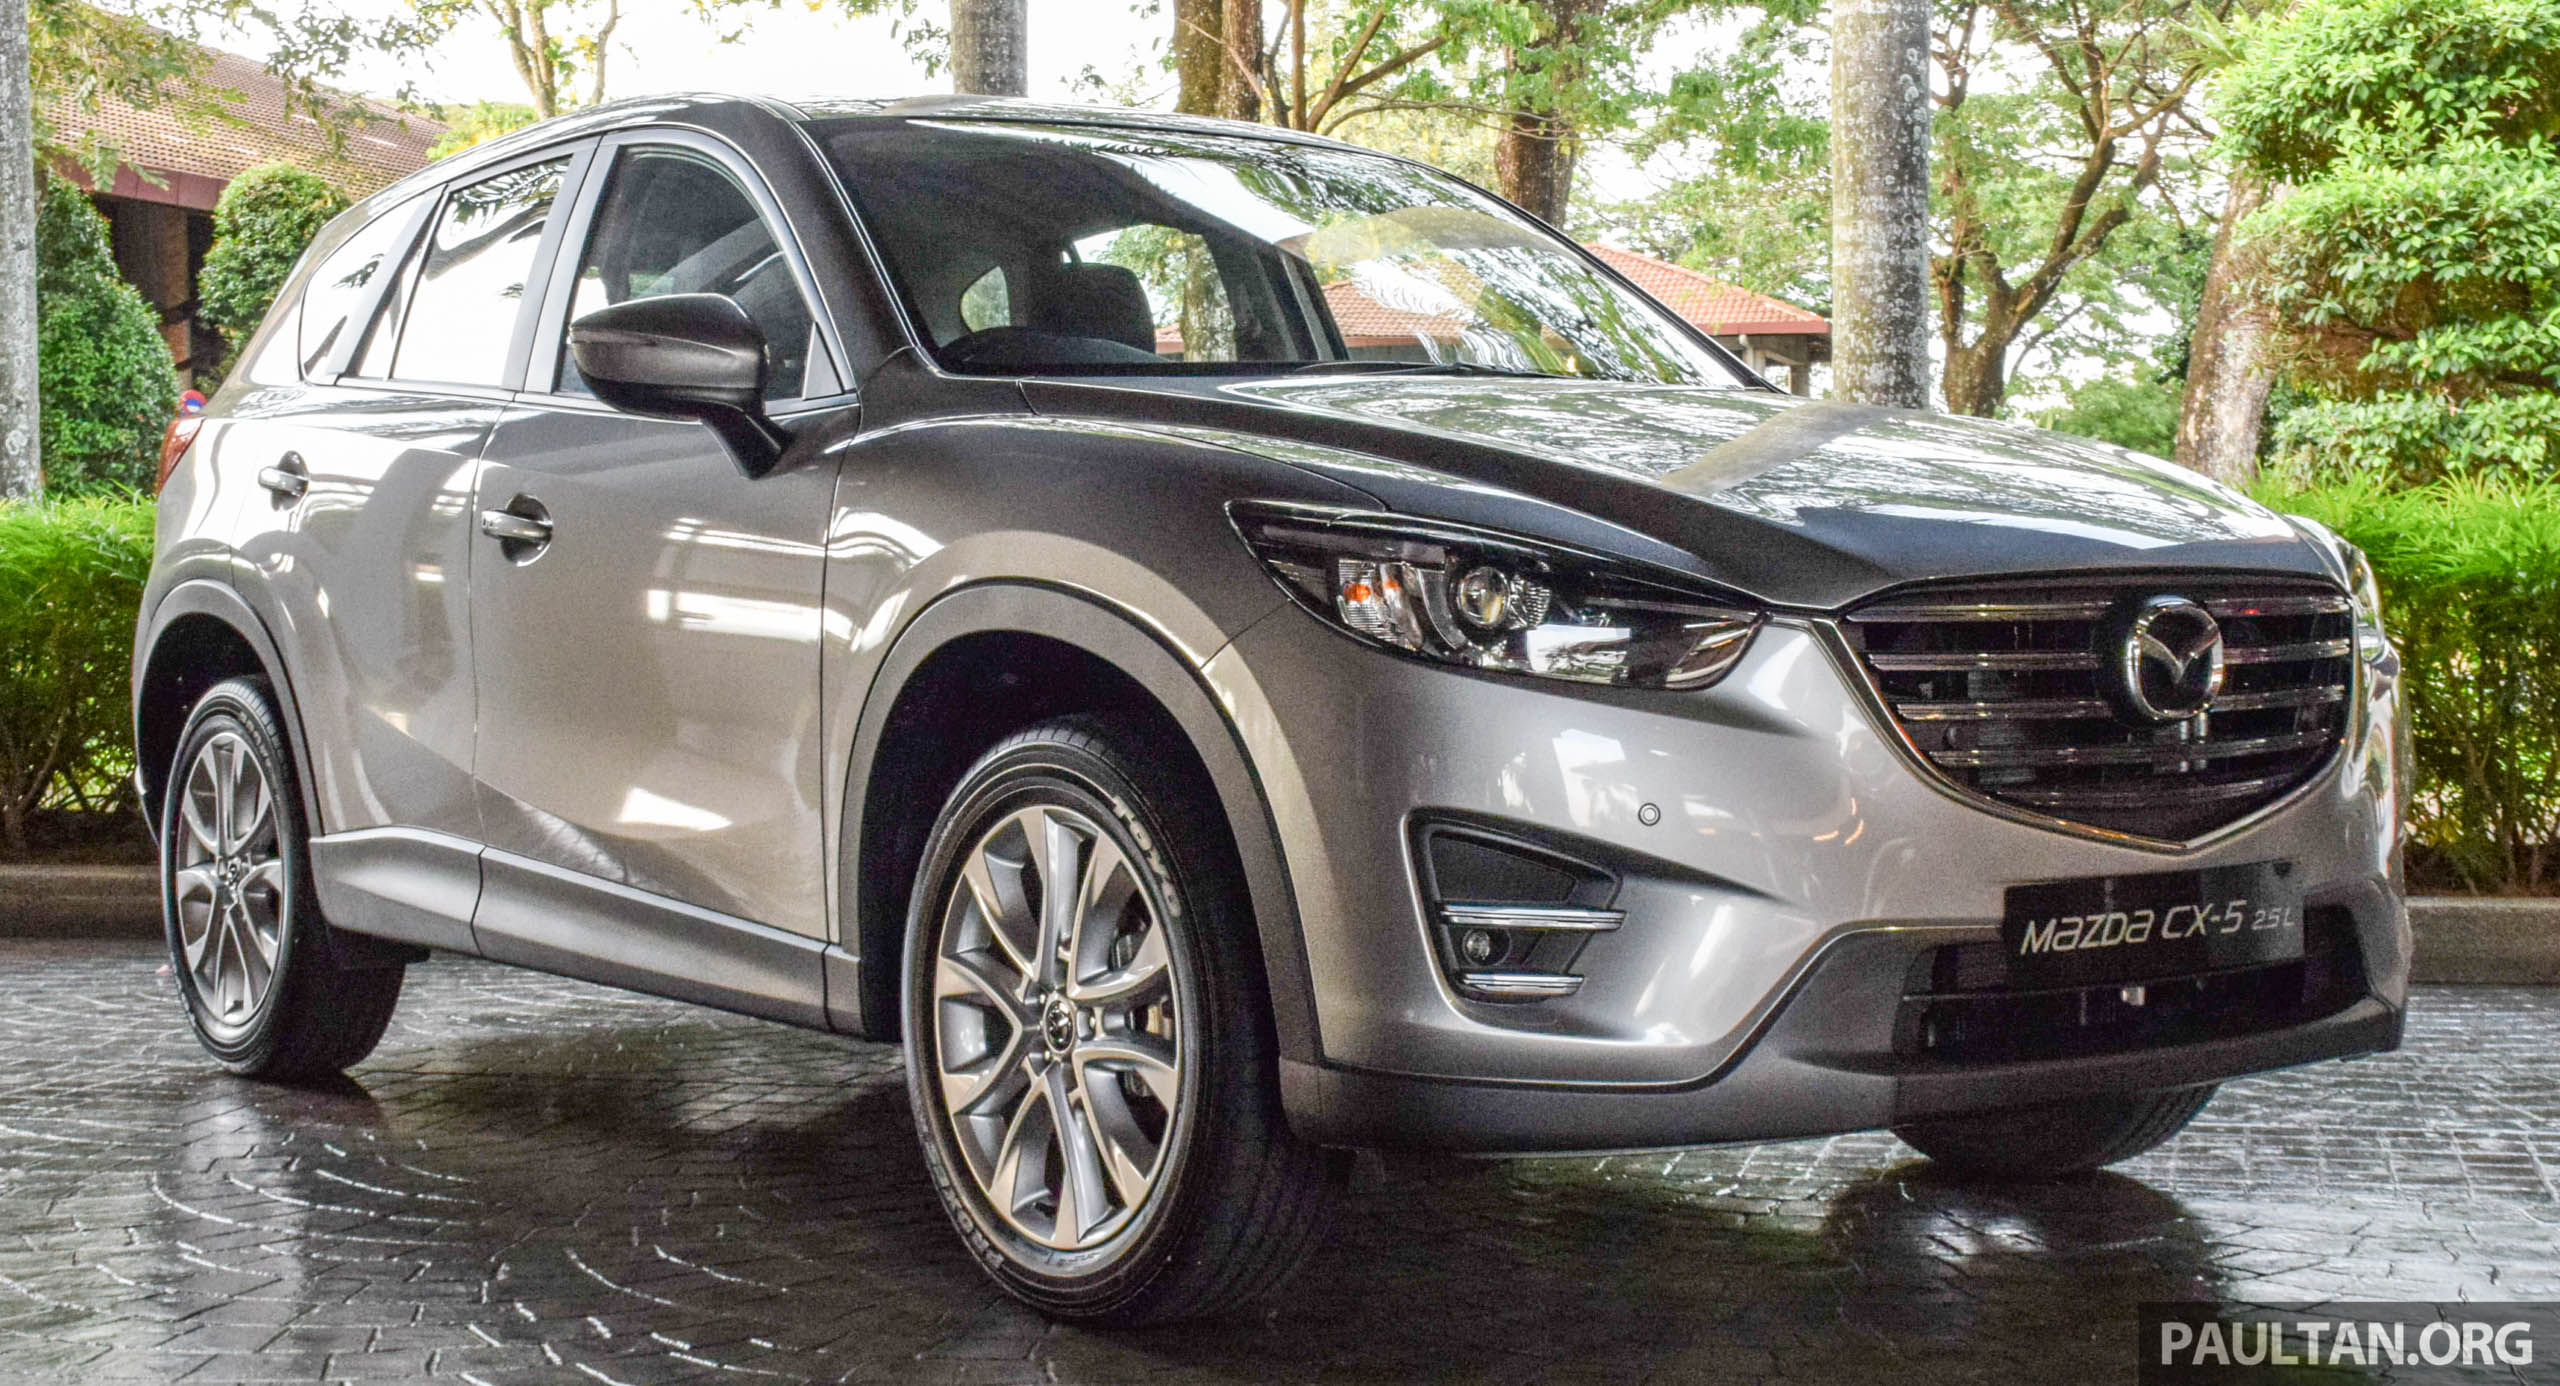 mazda cx 5 facelift ckd prices revealed 2 5l models now more than rm10k less 2 0l more expensive. Black Bedroom Furniture Sets. Home Design Ideas